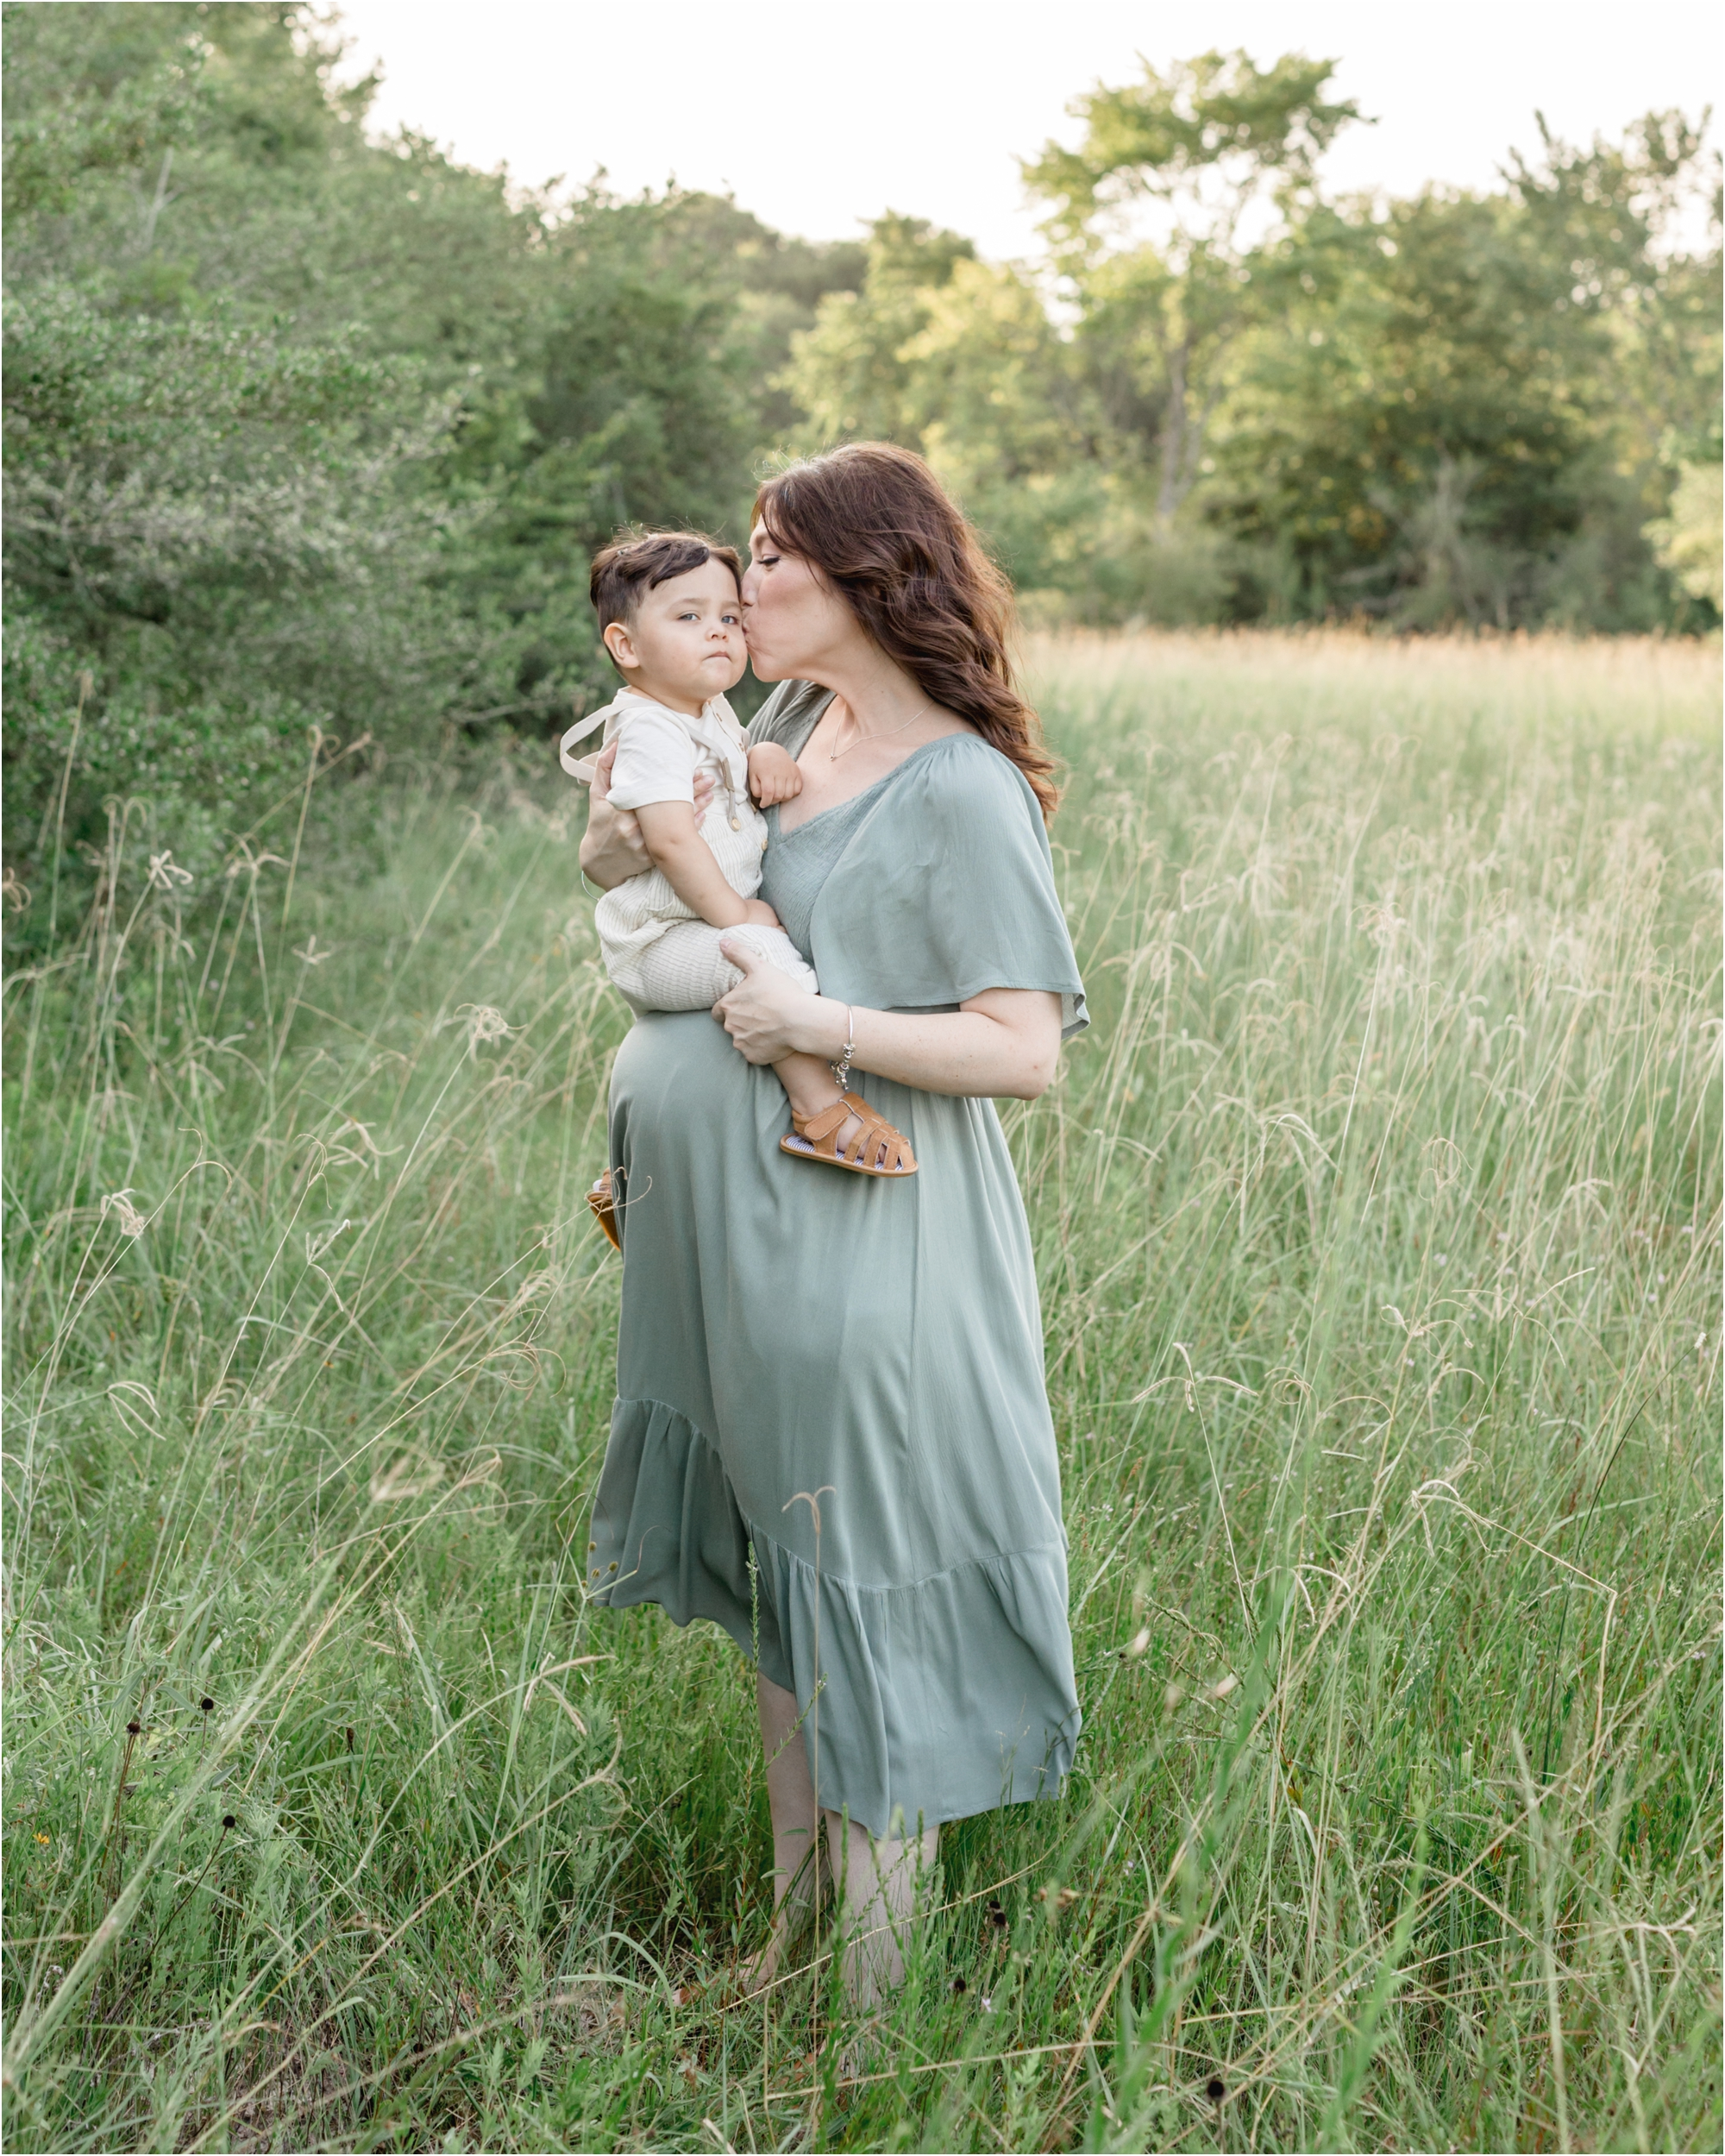 Mom kisses toddler during field maternity photoshoot. Photo by Lifetime of Clicks Photography.